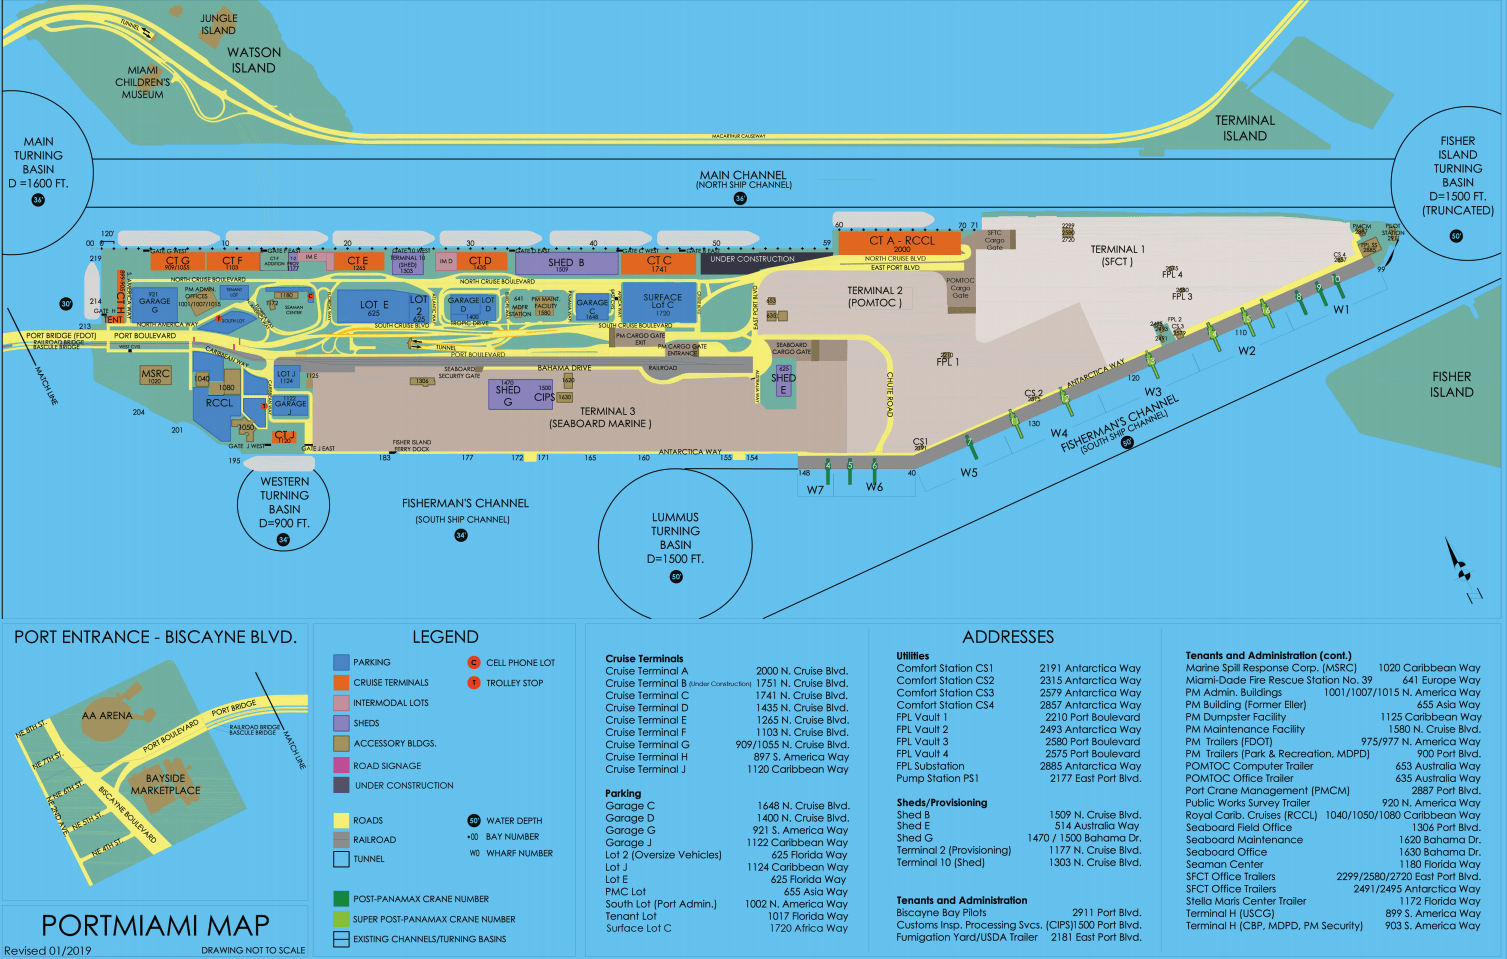 Map of PortMiami (Image courtesy of PortMiami)